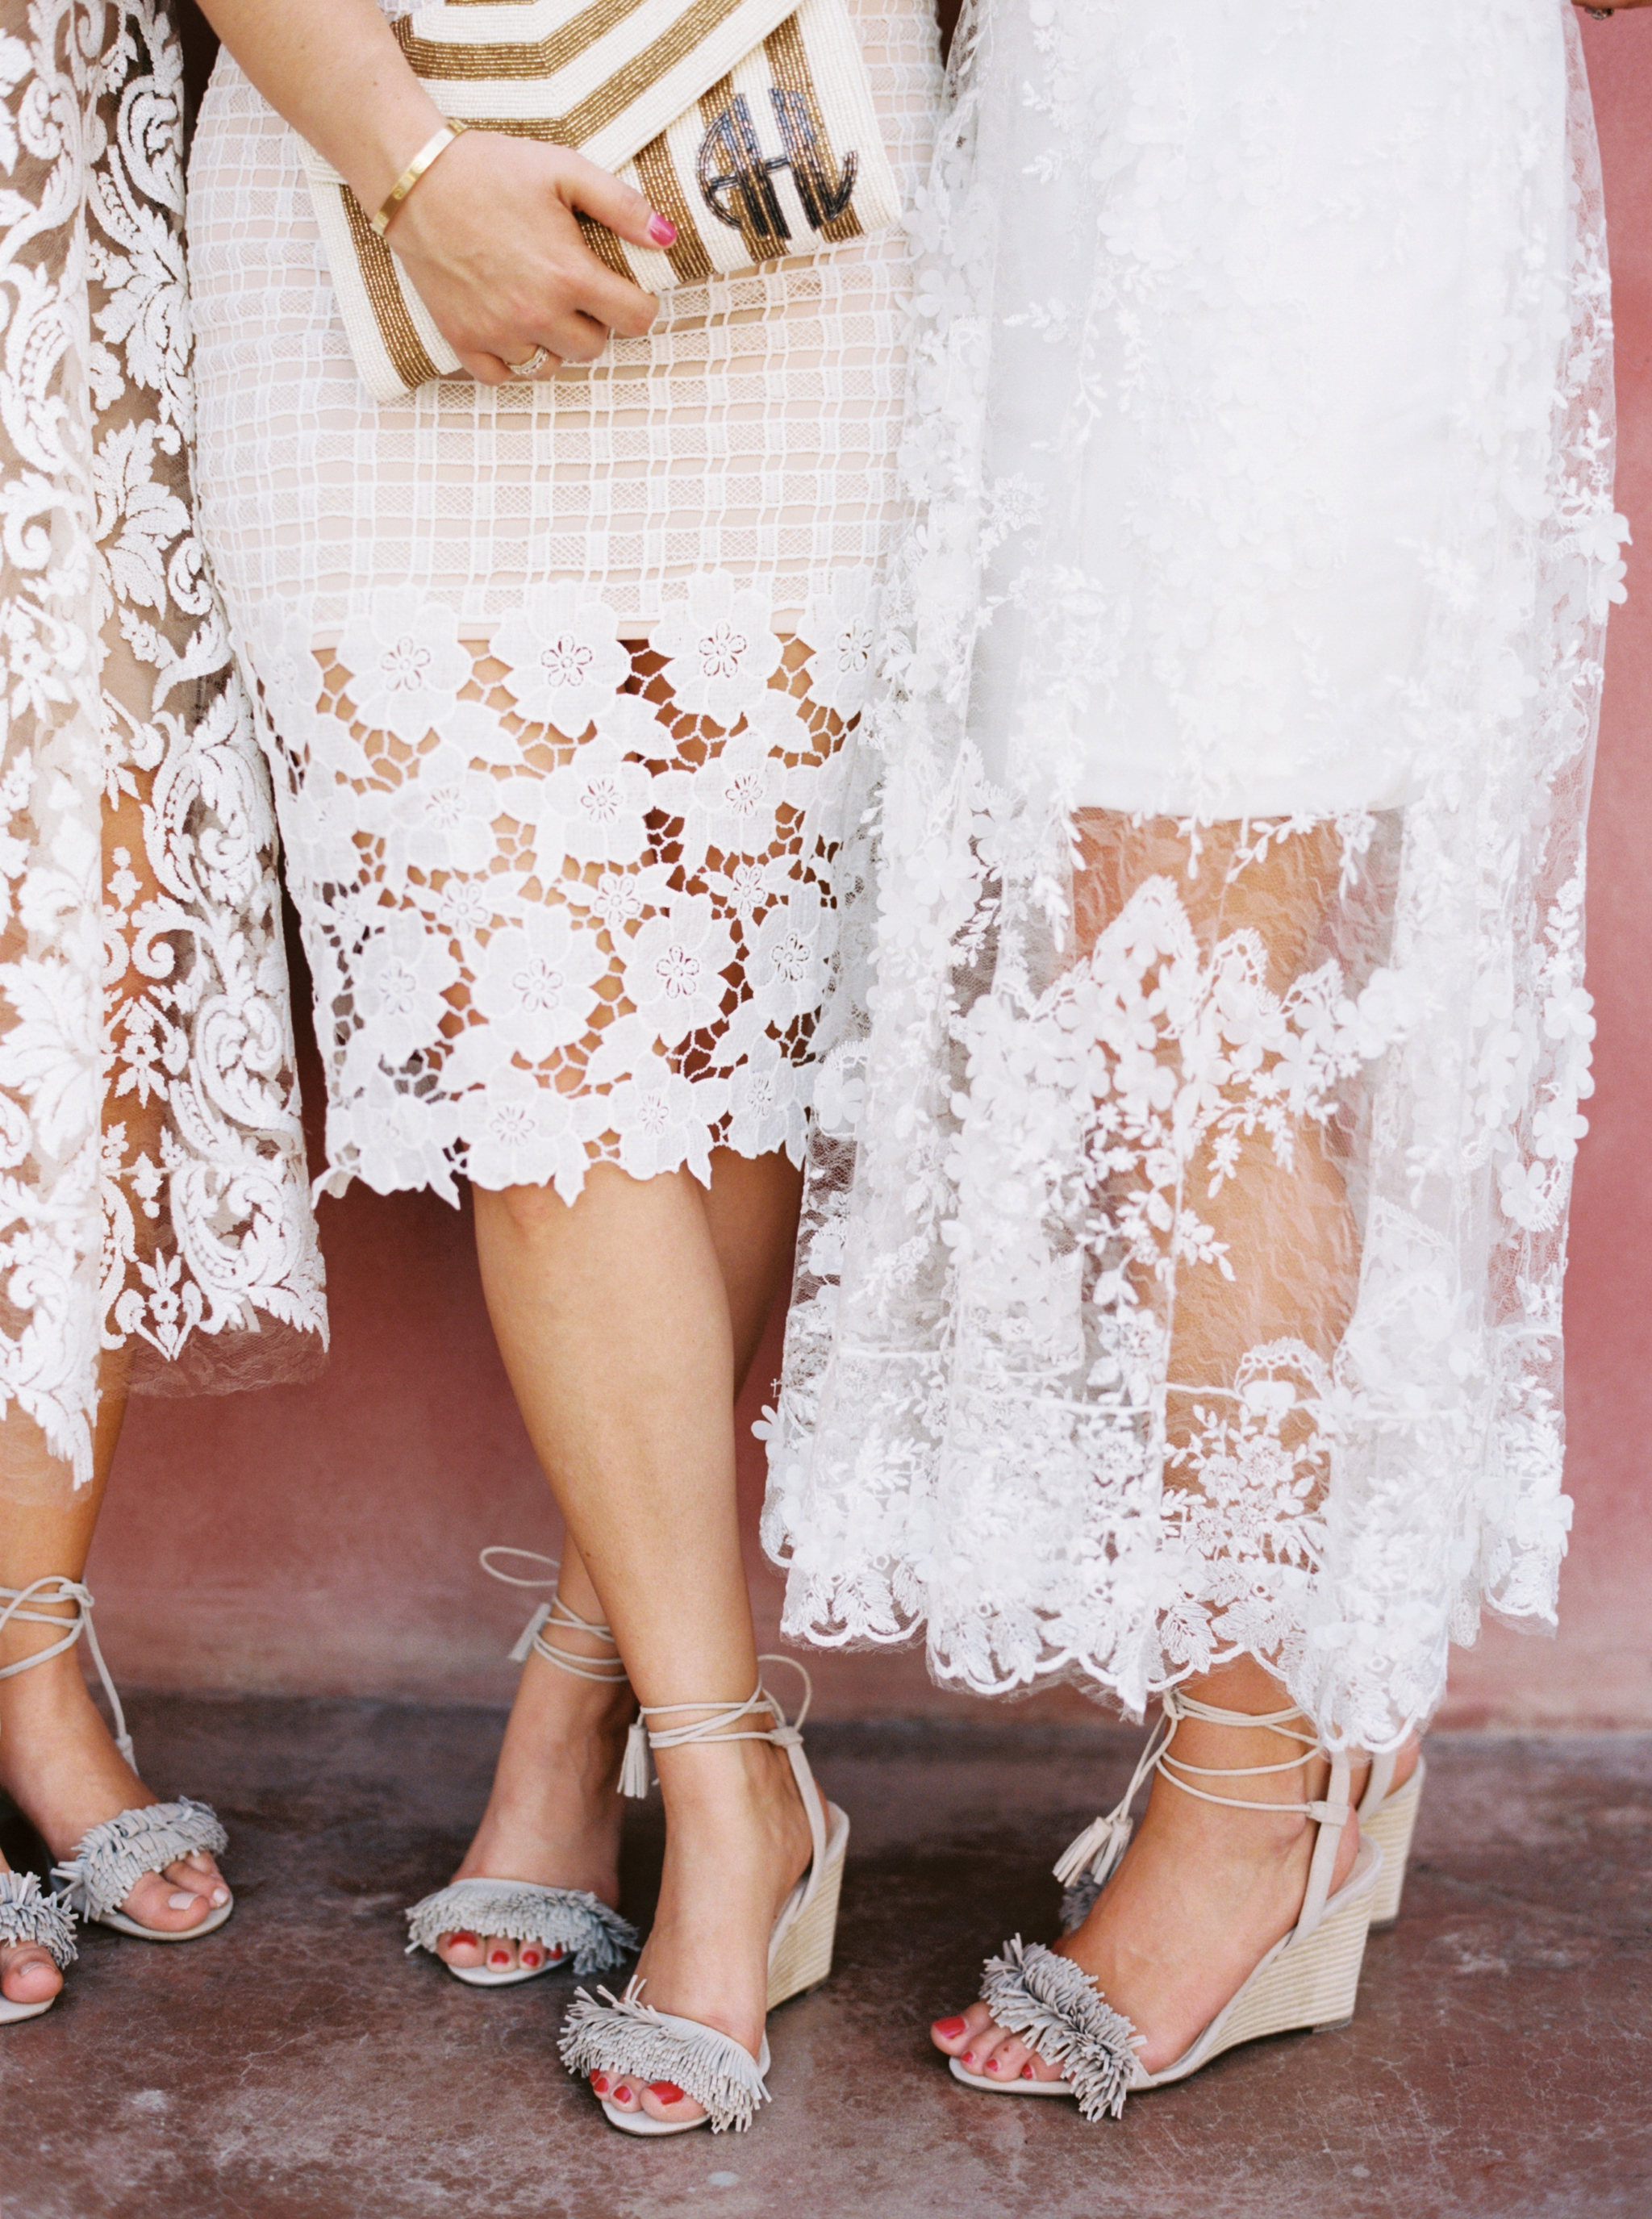 All these bridesmaids wore white, coupled with fringed shoes and clutches designed by the bride  by Top Texas Wedding Photographer Hannah Mayson